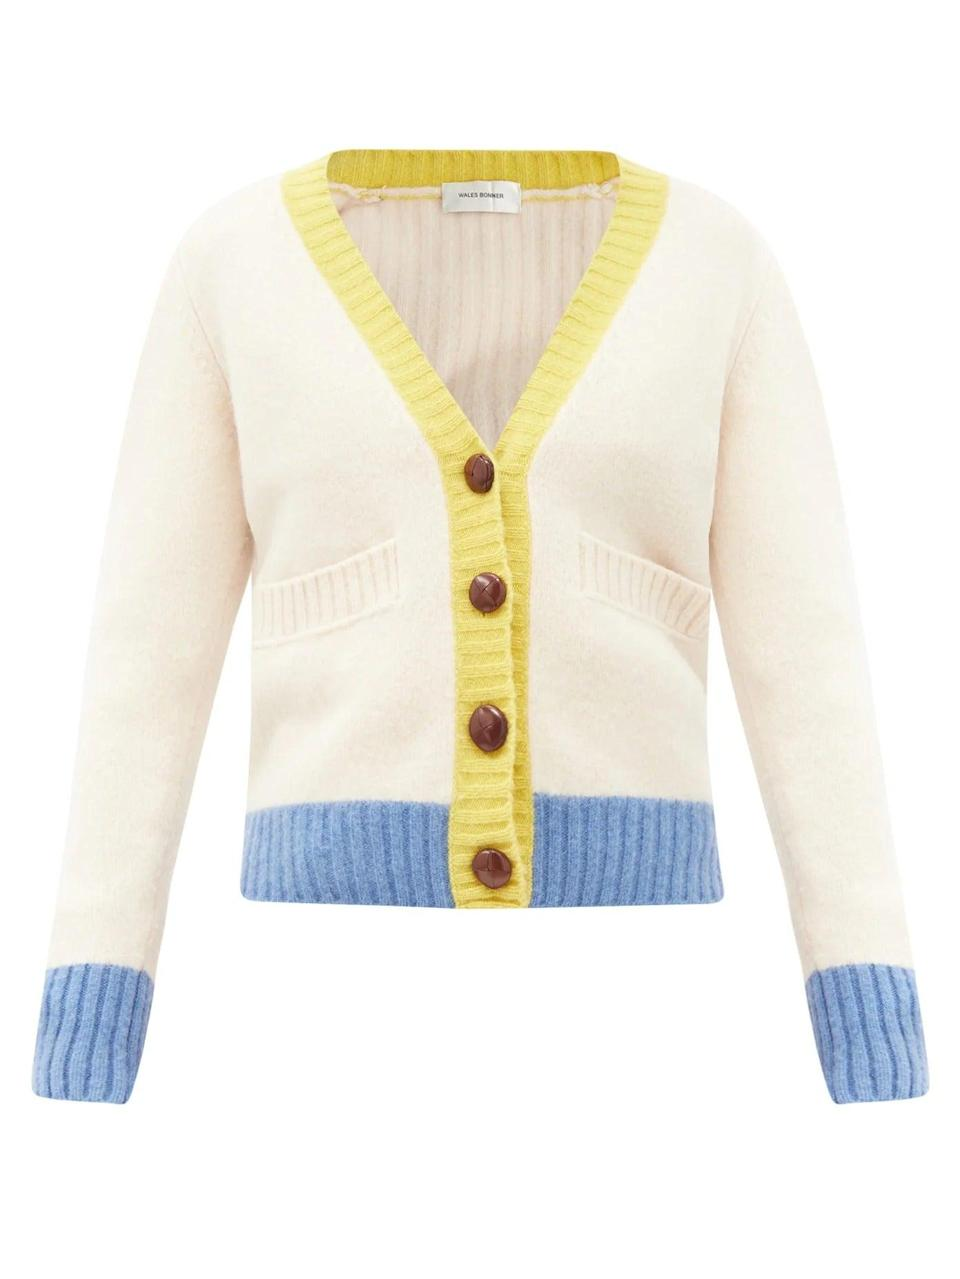 """<br><br><strong>Wales Bonner</strong> Wool V-Neck Cardigan, $, available at <a href=""""https://www.matchesfashion.com/products/Wales-Bonner-Johnson-wool-V-neck-cardigan-1371786"""" rel=""""nofollow noopener"""" target=""""_blank"""" data-ylk=""""slk:Matches Fashion"""" class=""""link rapid-noclick-resp"""">Matches Fashion</a>"""